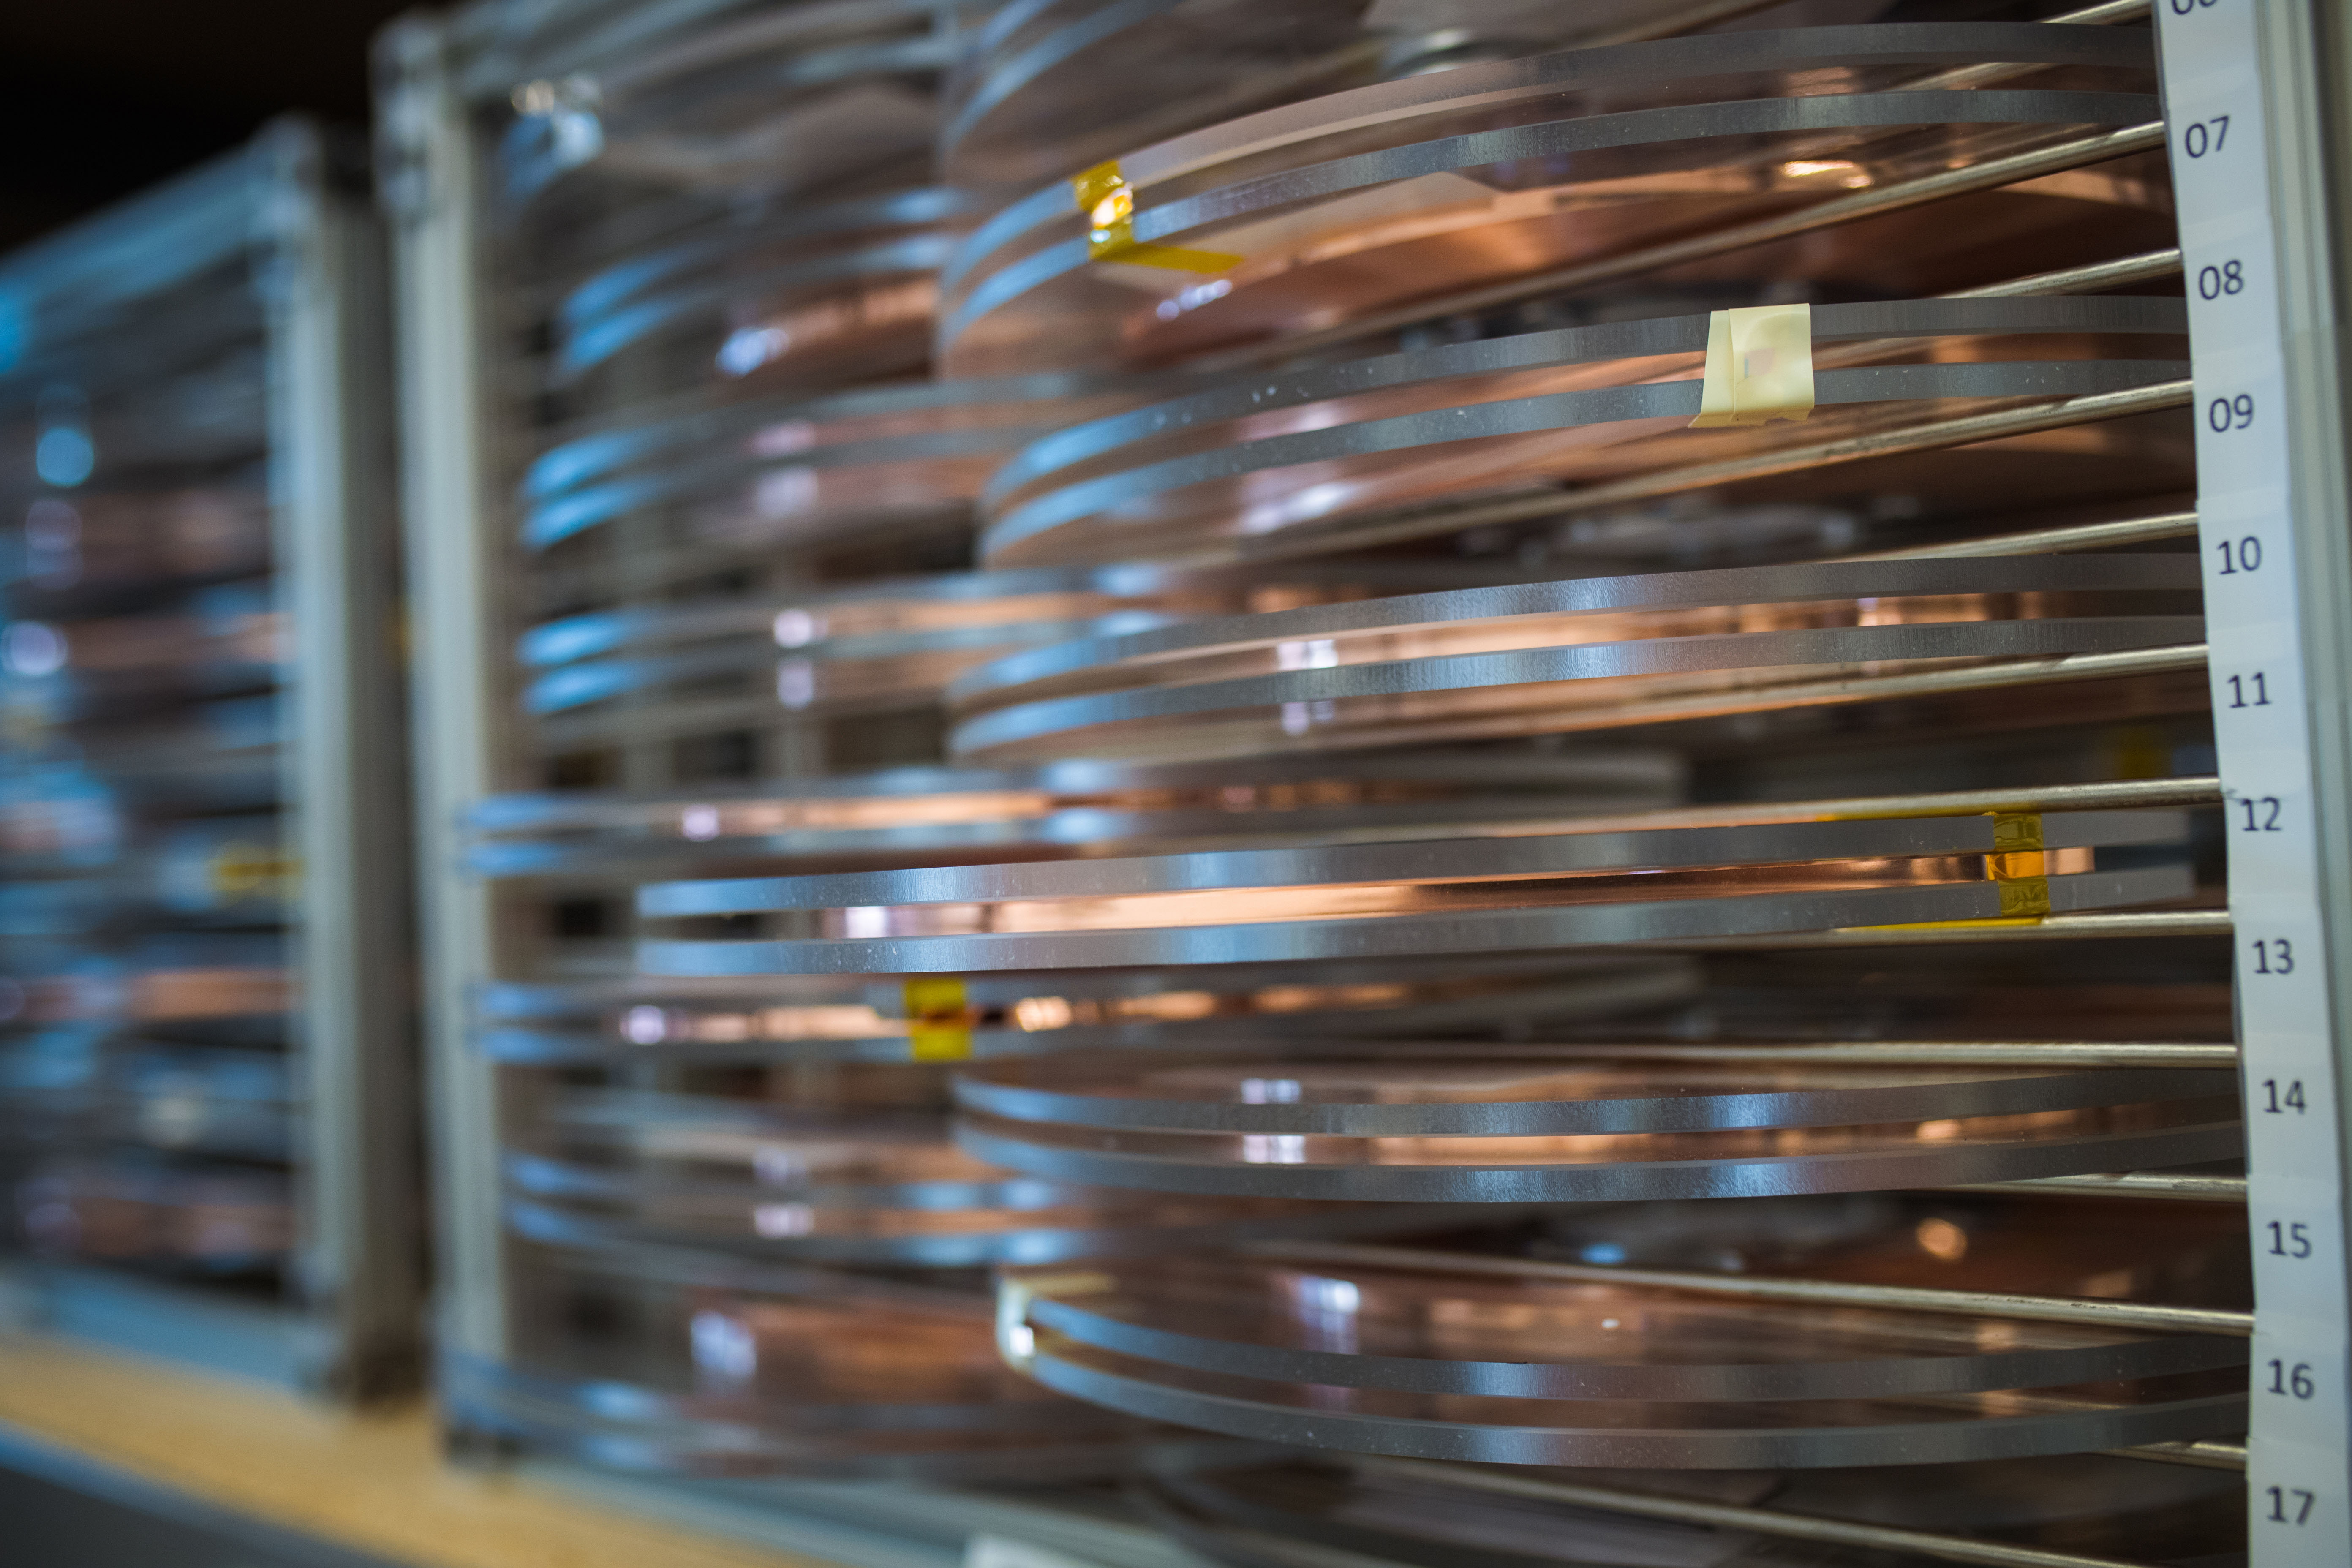 Pancakes of superconducting wire are used to make the magnet modular.